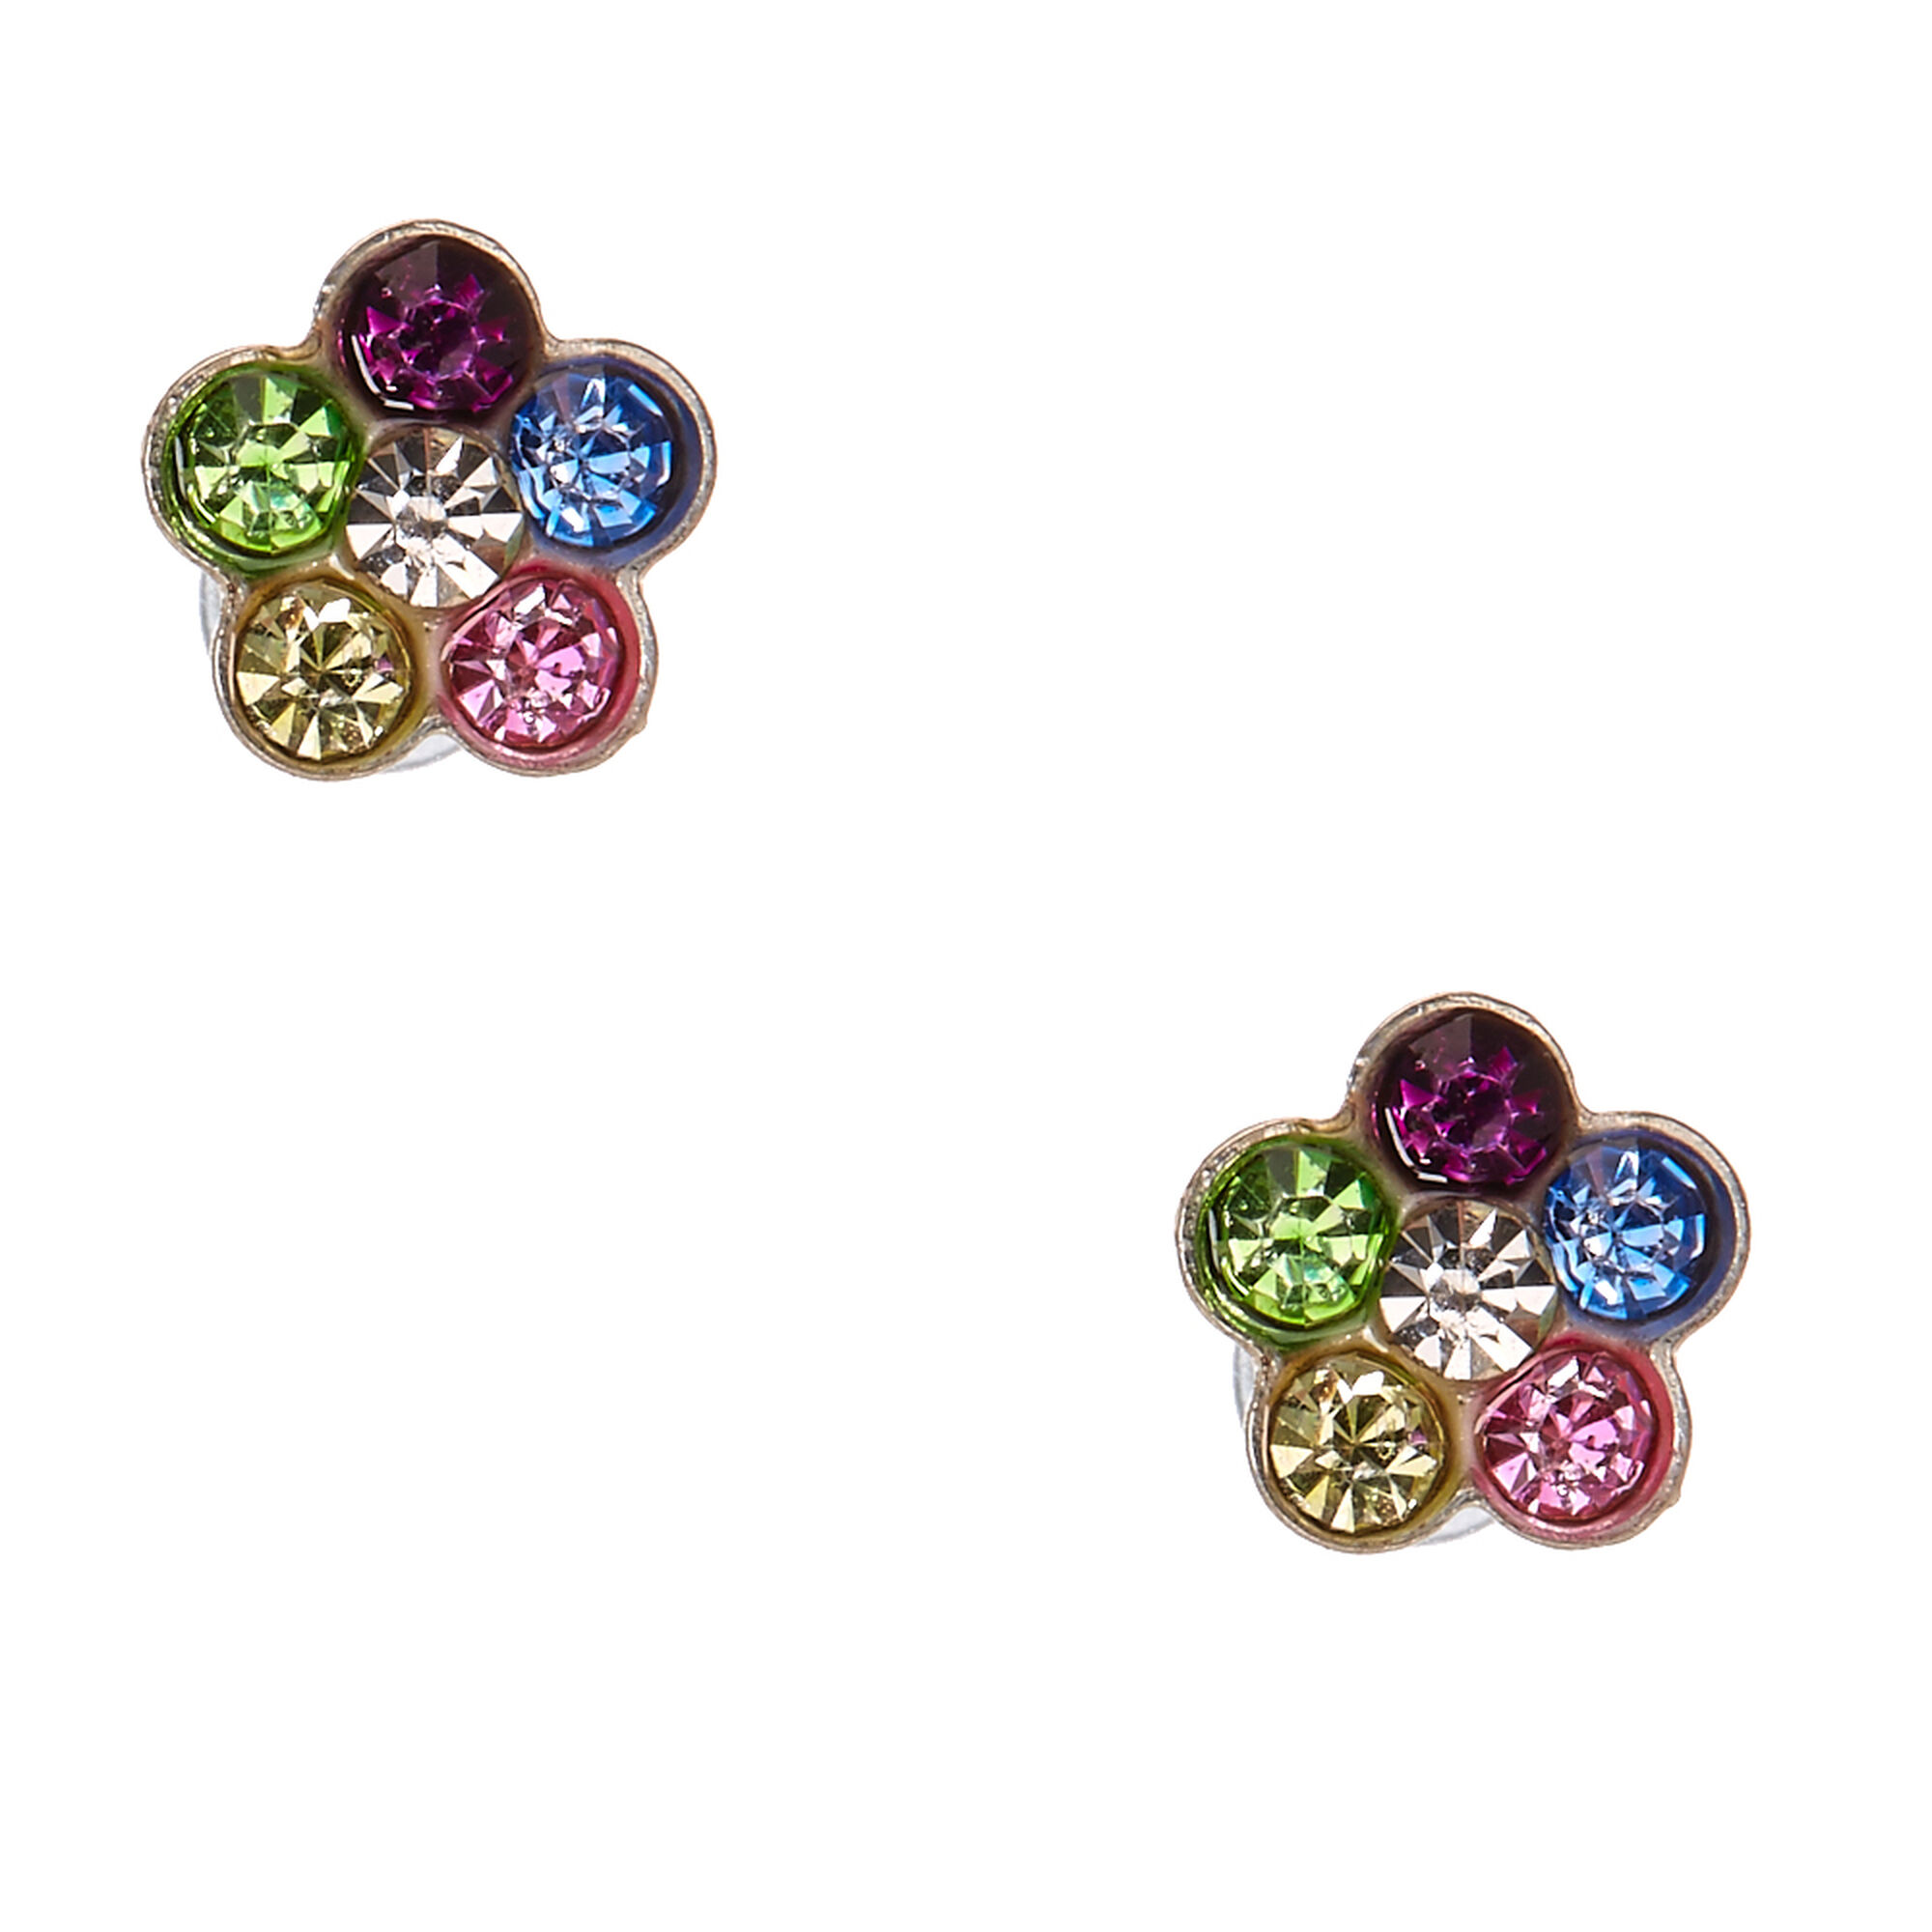 rainbow gold arlette retrospective jewellery collections earrings products